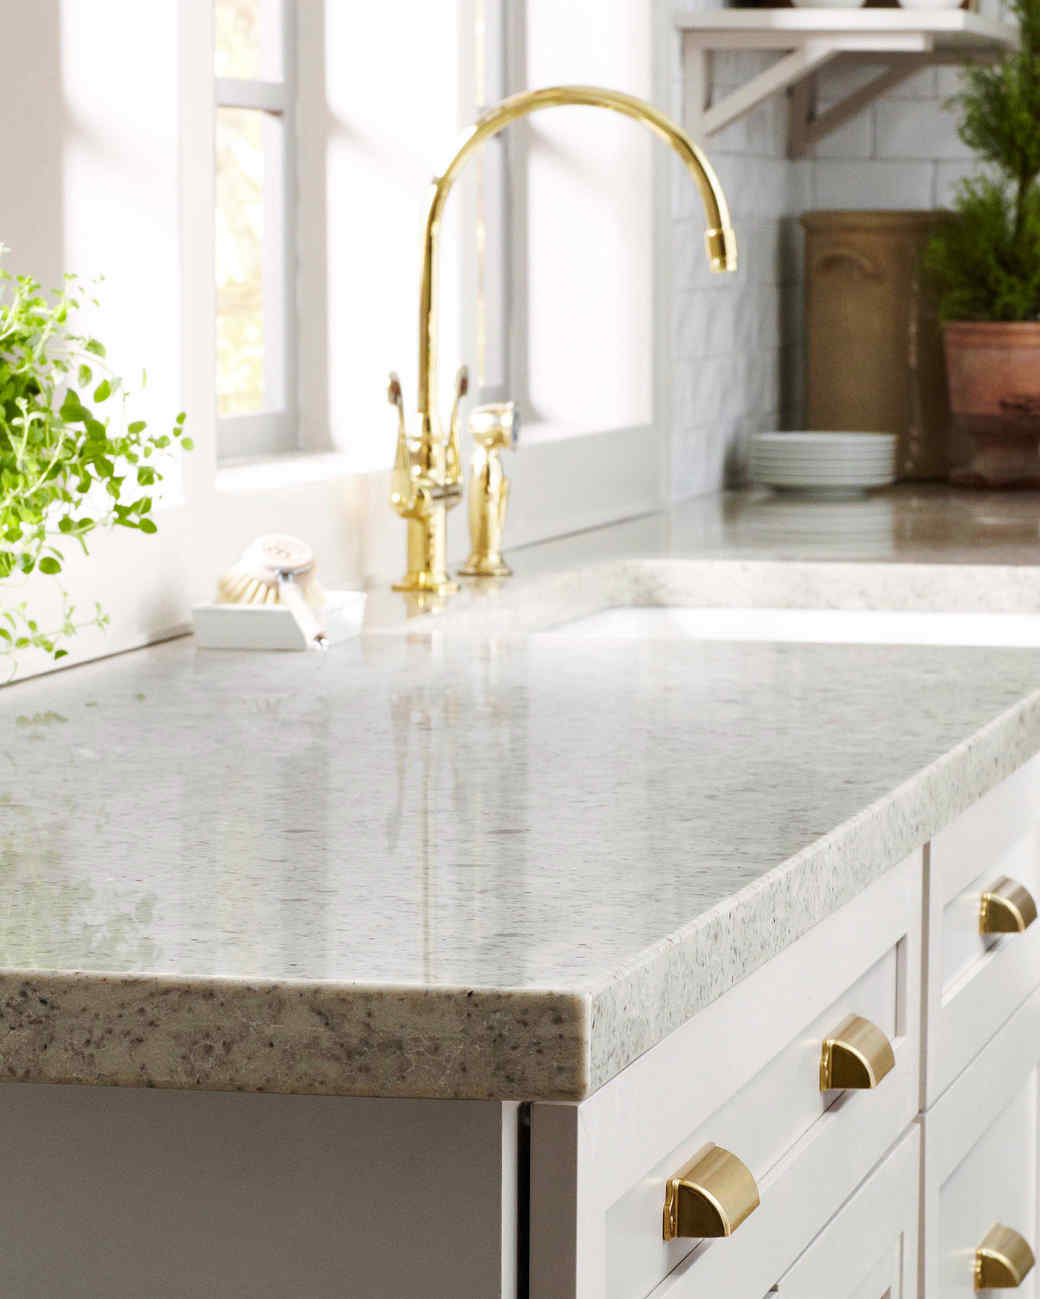 Can You Paint Corian Countertops Home Depot Quartz And Corian Countertops Martha Stewart